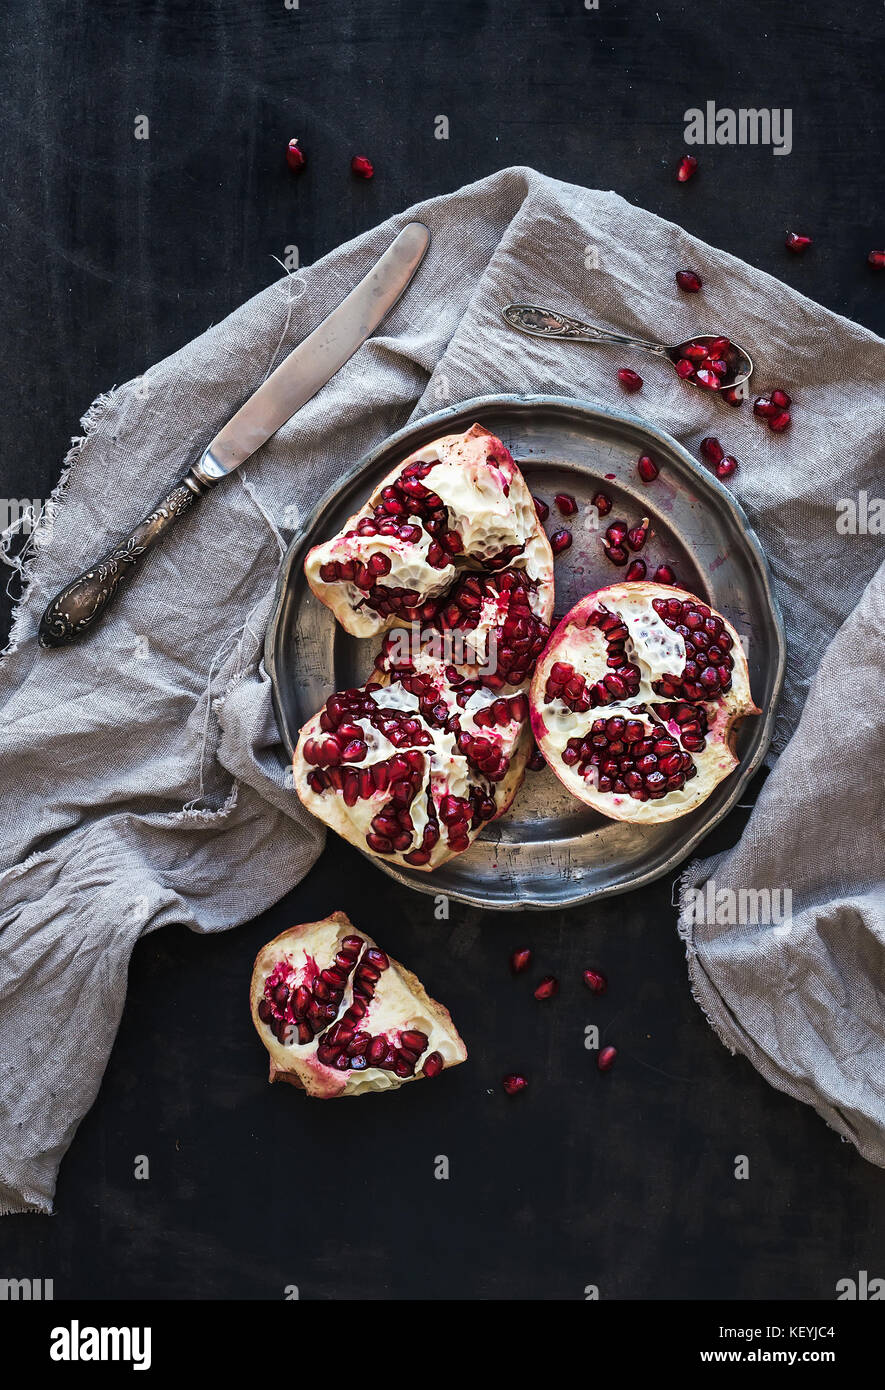 Red ripe peeled pomegranate on rustic metal plate and beige kitchen towel - Stock Image